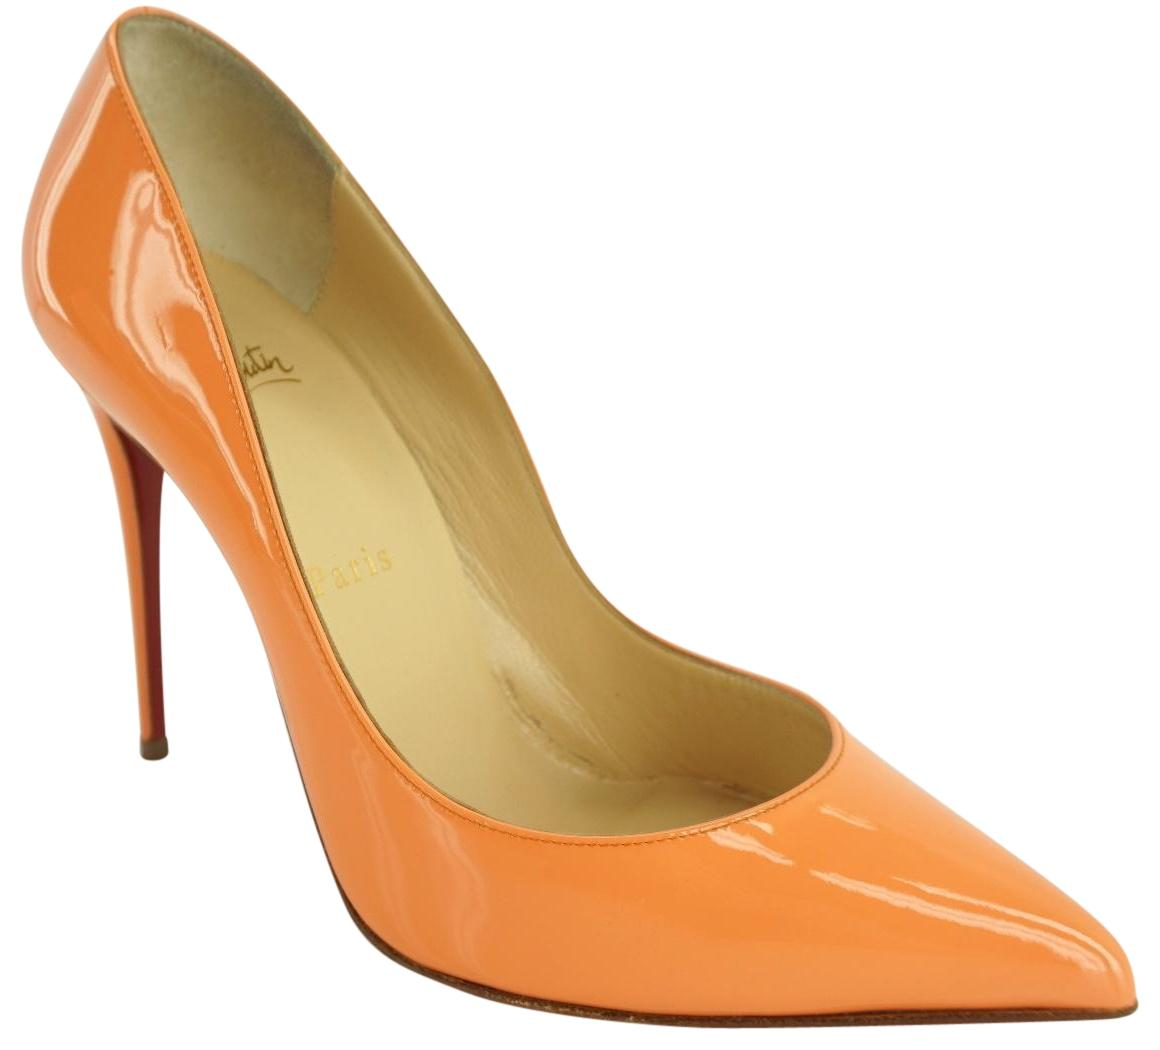 Christian Louboutin Orange Peach Patent Pigalle Follies Classic Pointy Pumps Size EU 37.5 (Approx. US 7.5) Regular (M, B)